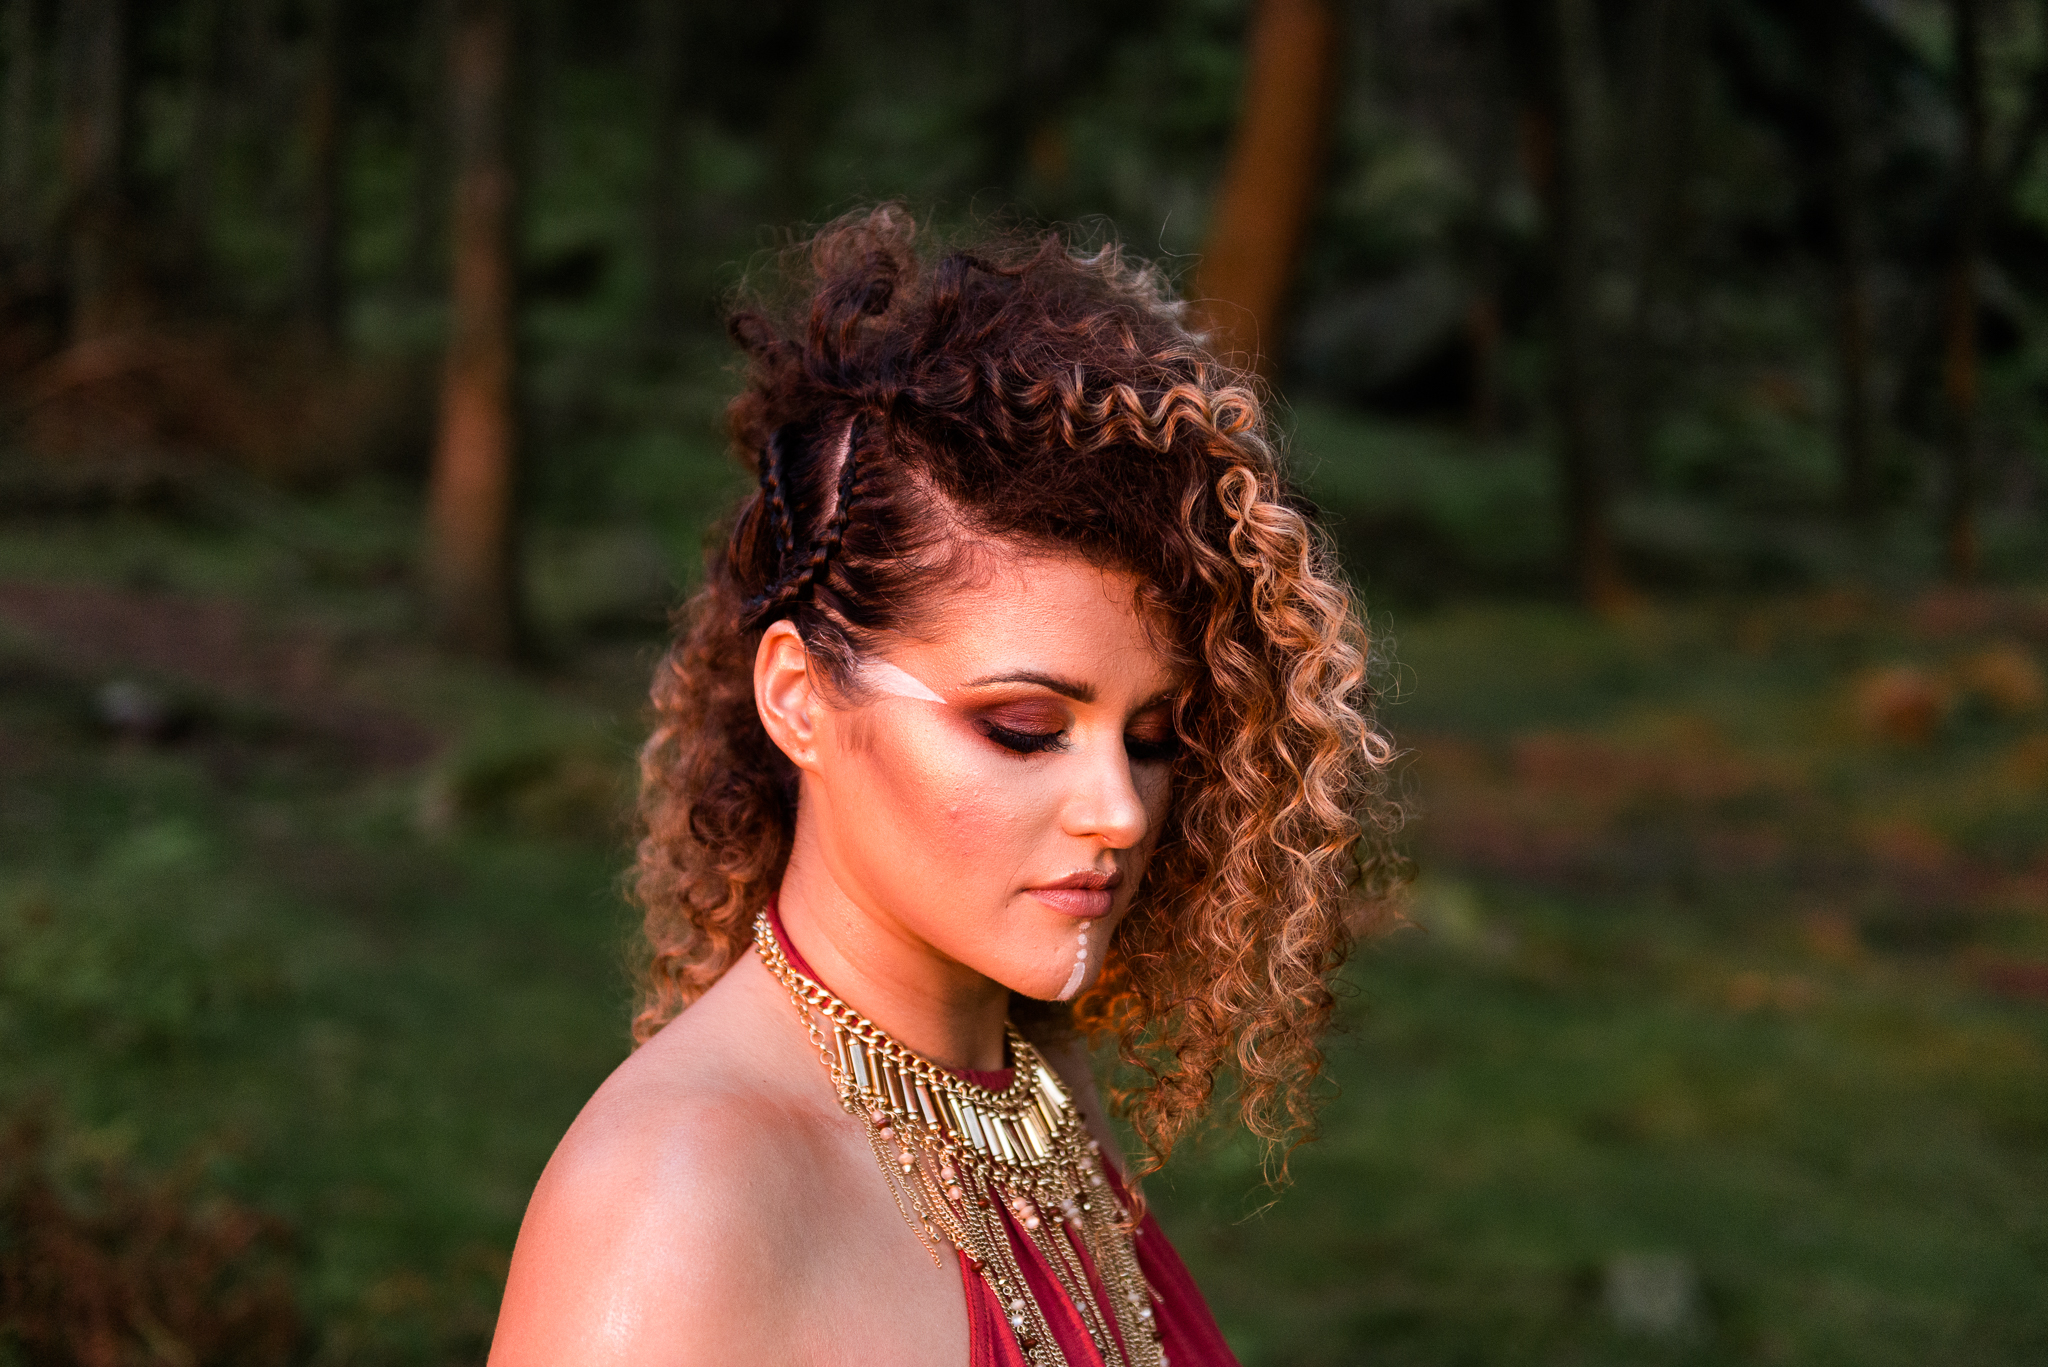 Styled Shoot Model Ethnic Earthy Tribal The Roaches Location Photographs - Jenny Harper Photography-9.jpg